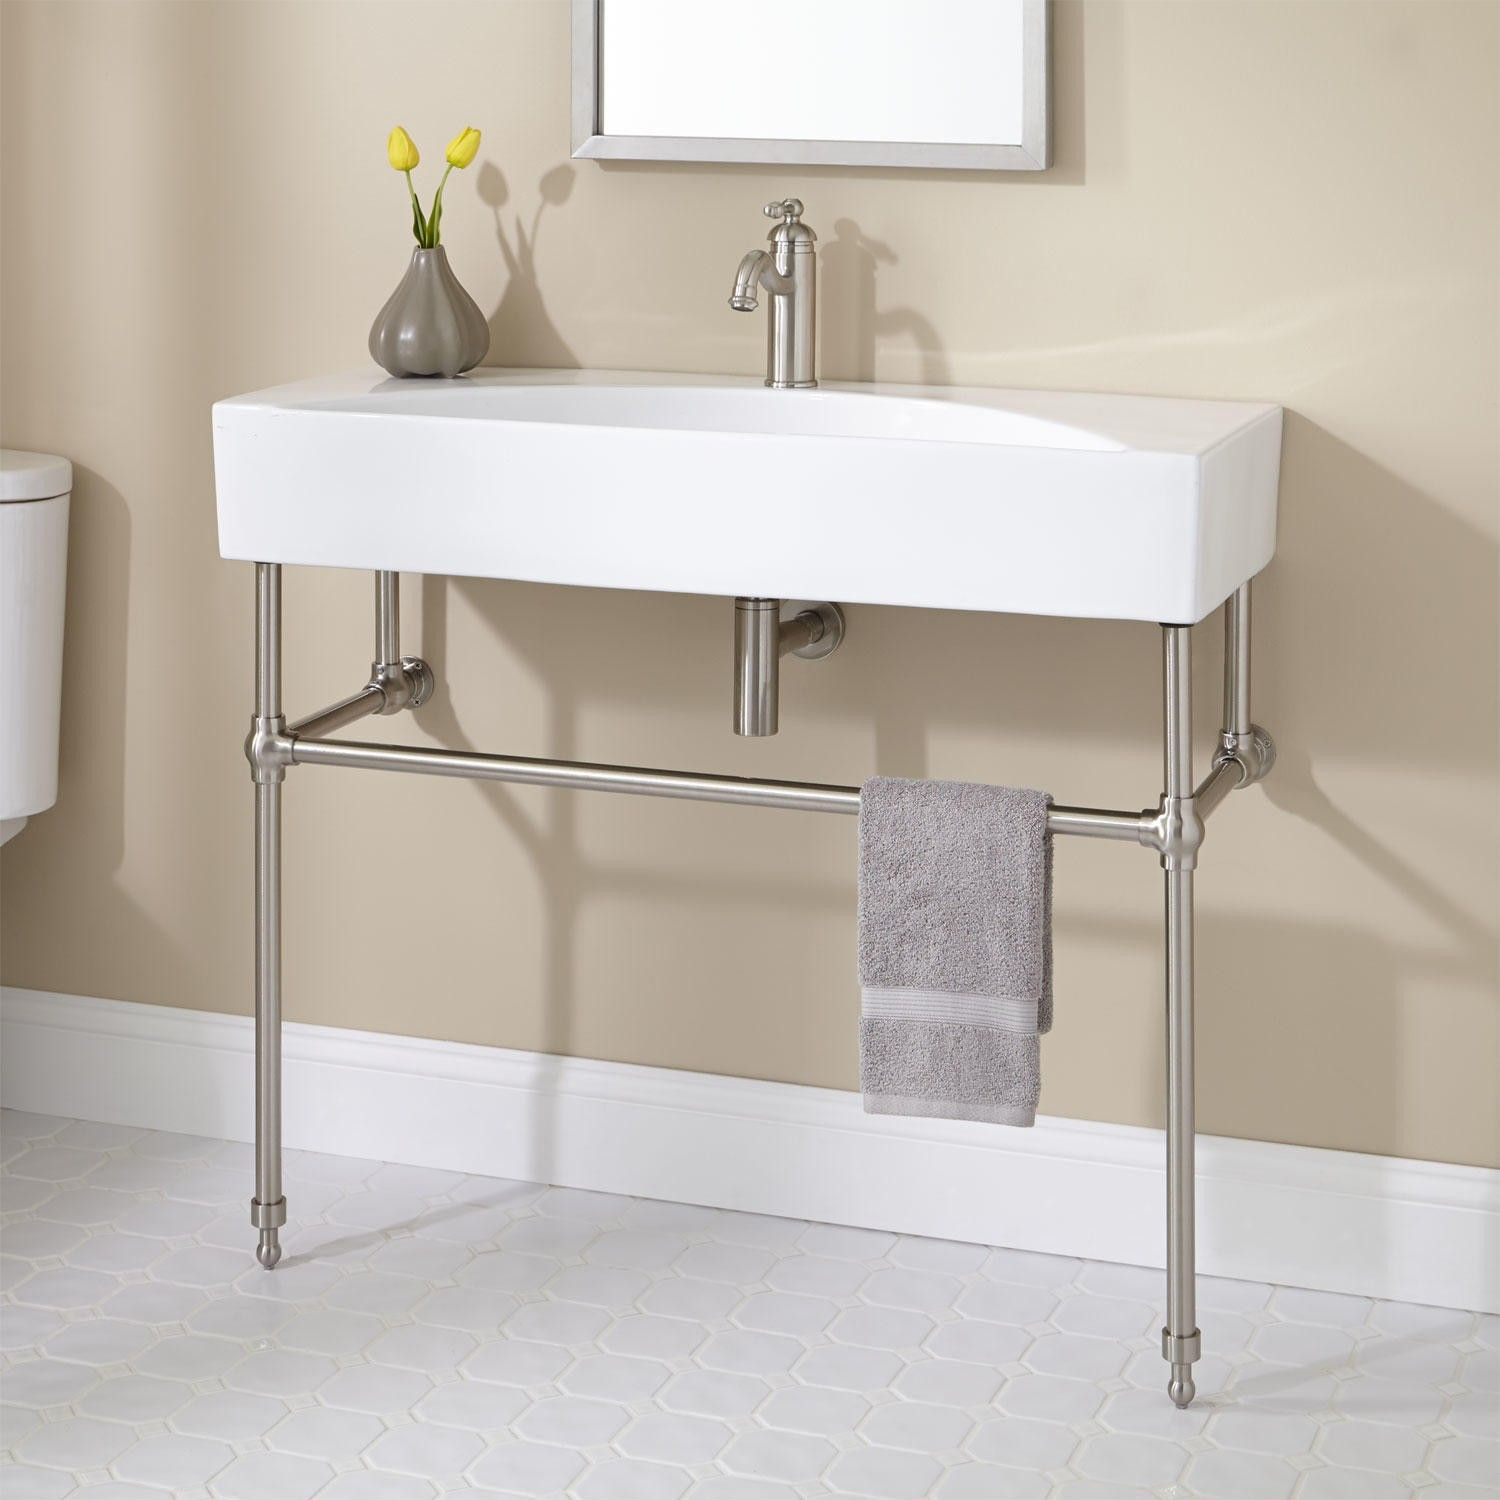 Zita Console Sink with Brass Stand - Console Sinks - Bathroom ...